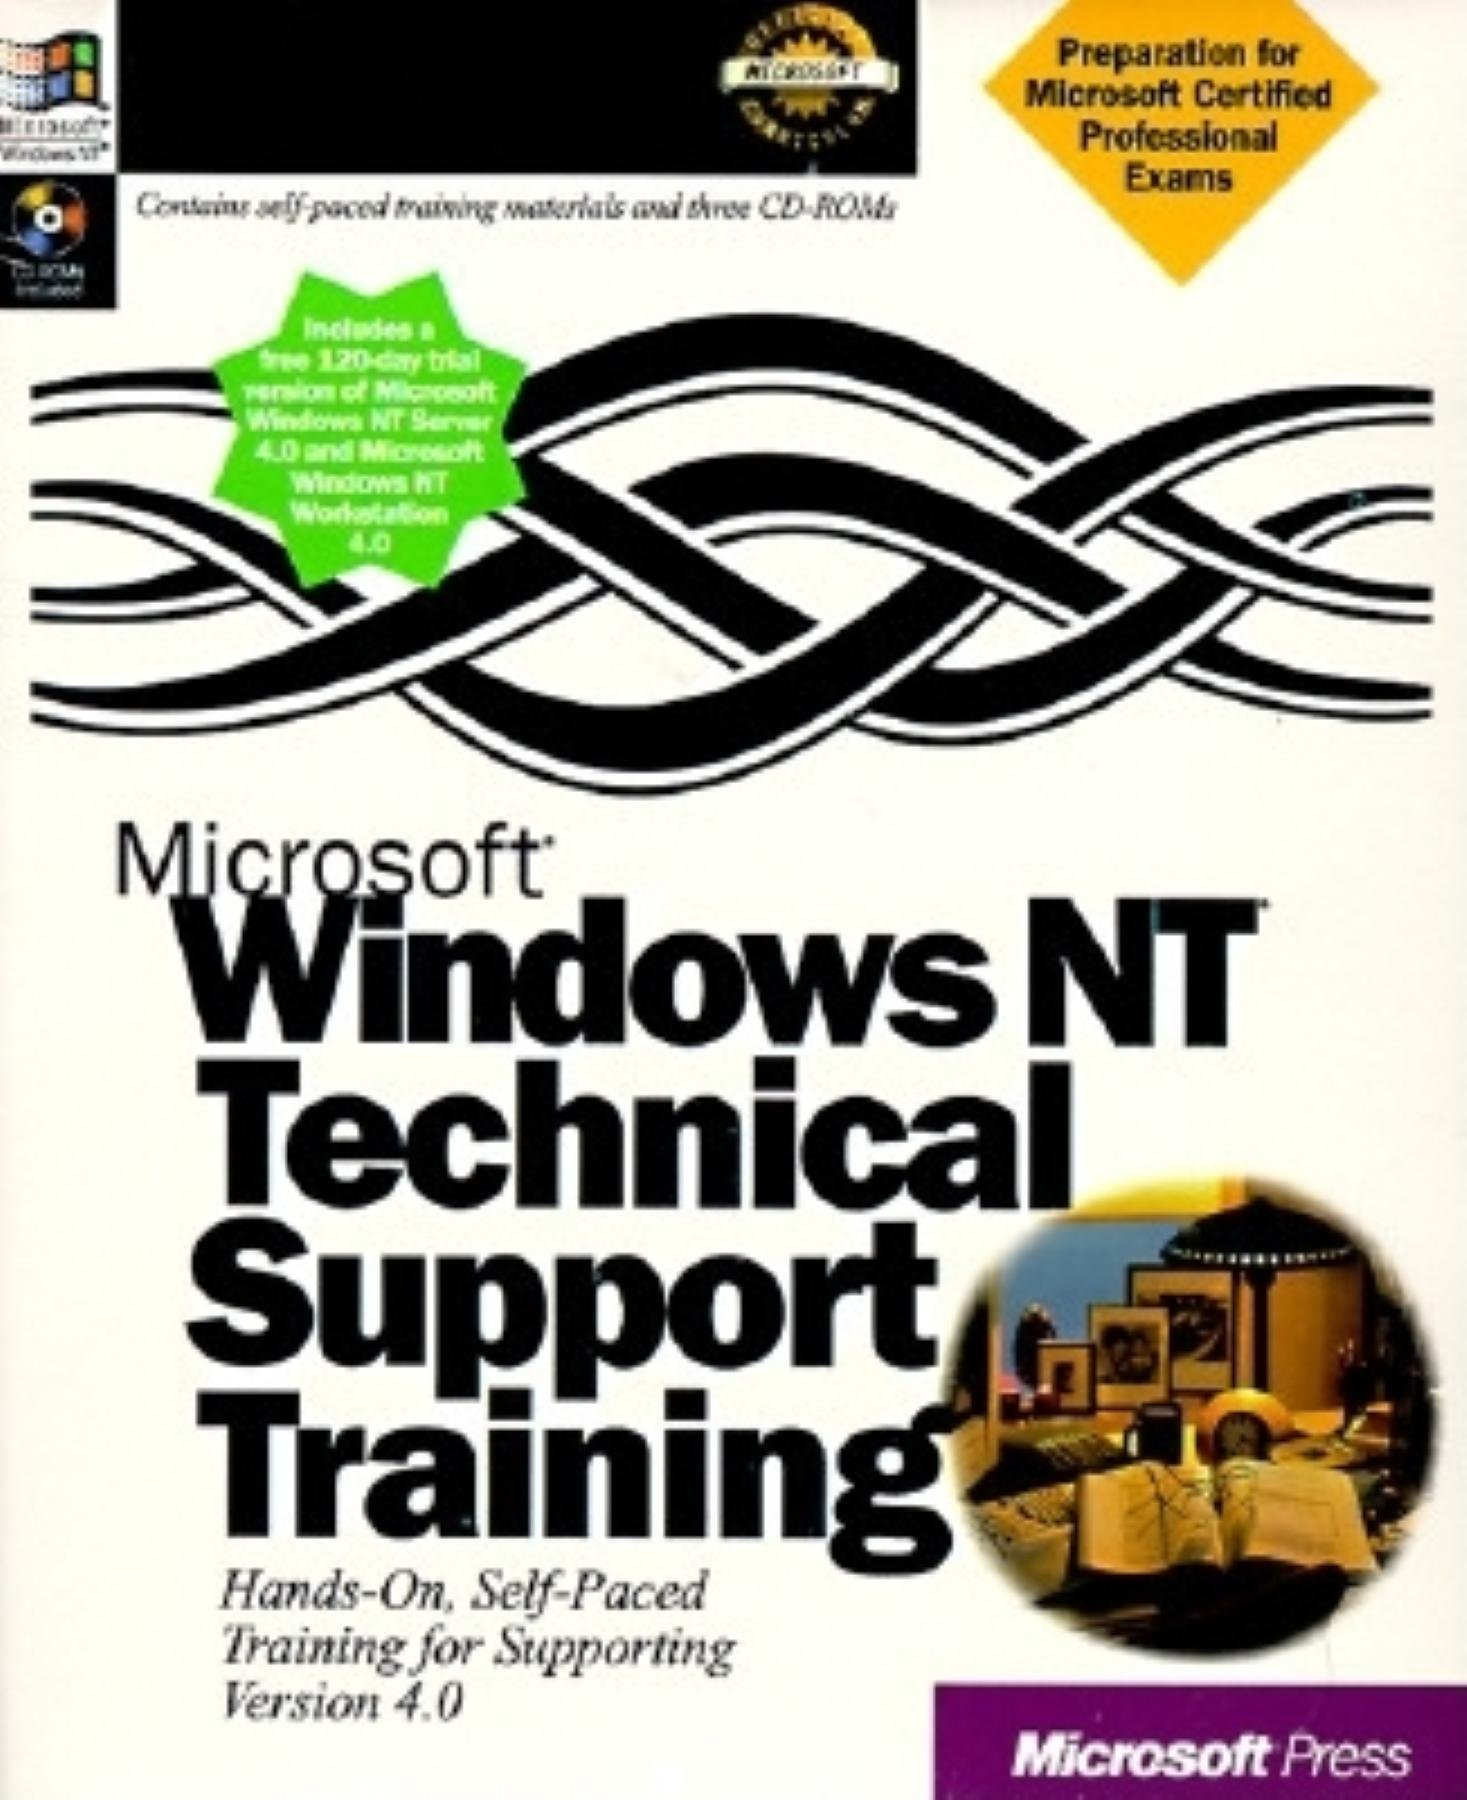 Microsoft windows nt technical support training microsoft microsoft windows nt technical support training microsoft certified professional microsoft press microsoft corporation staff 0790145137302 amazon 1betcityfo Choice Image